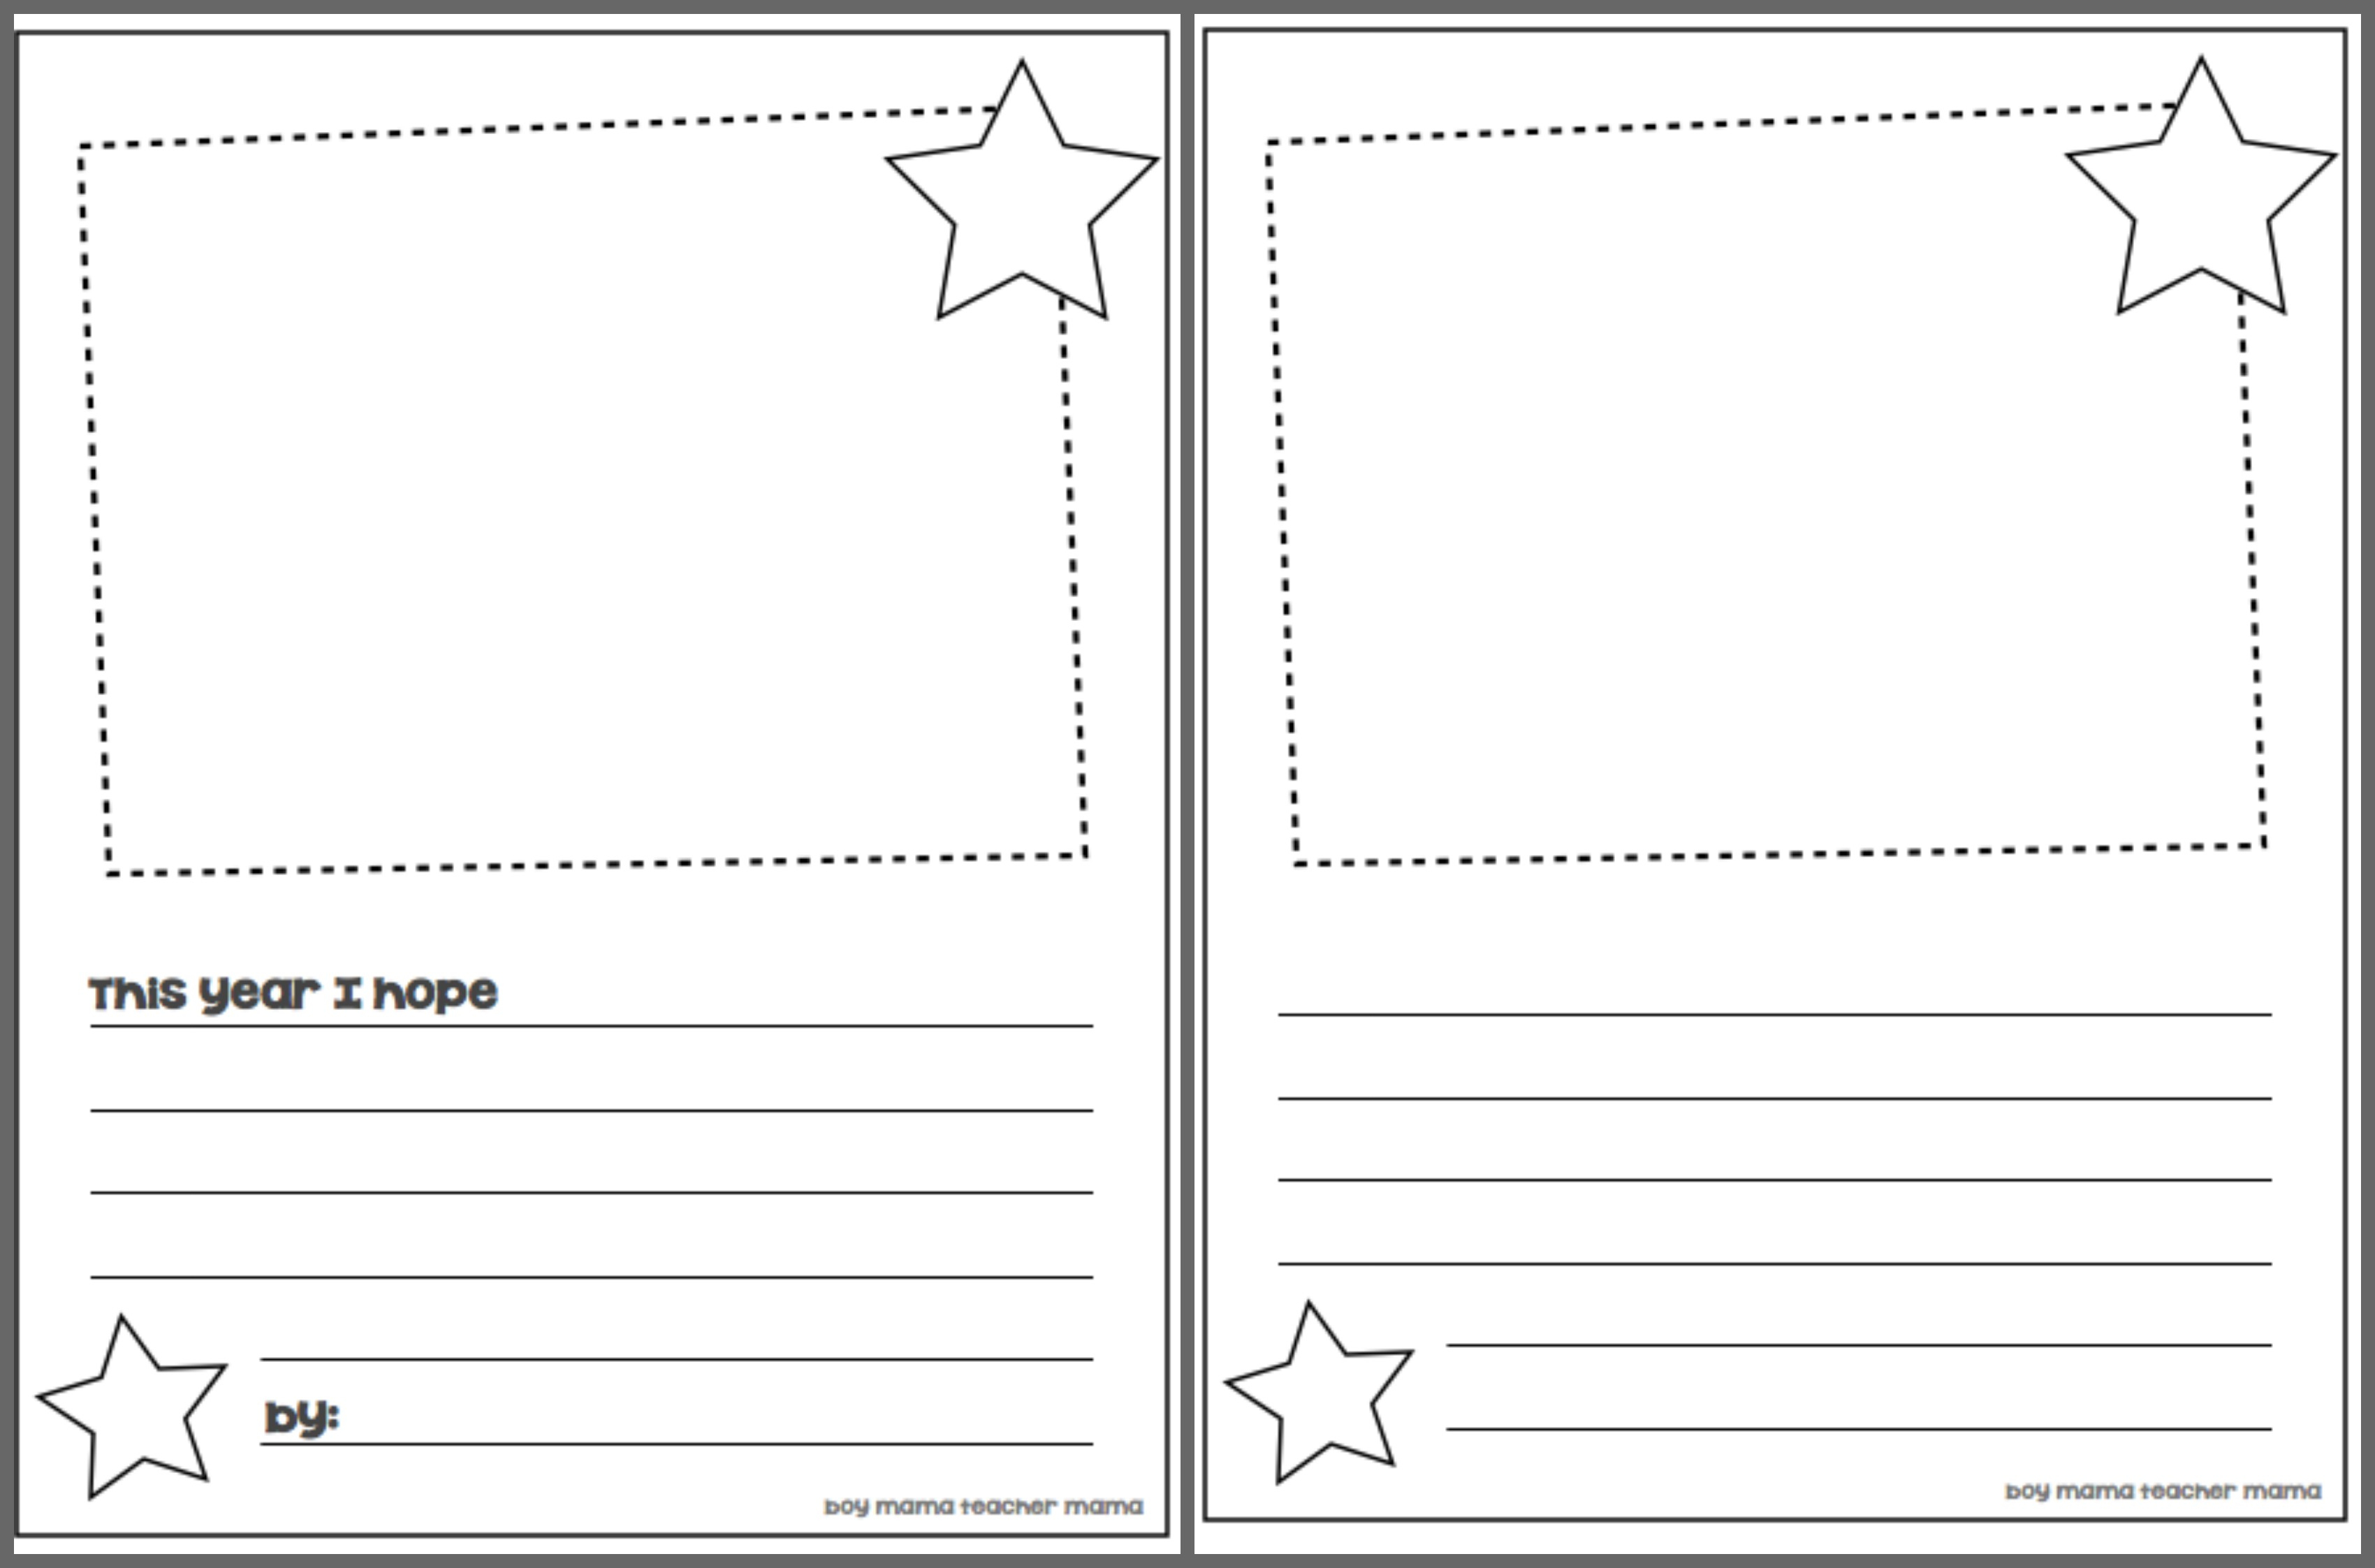 Book Mama: Back To School Hopes And Dreams - Boy Mama Teacher Mama | Hopes And Dreams Printable Worksheet